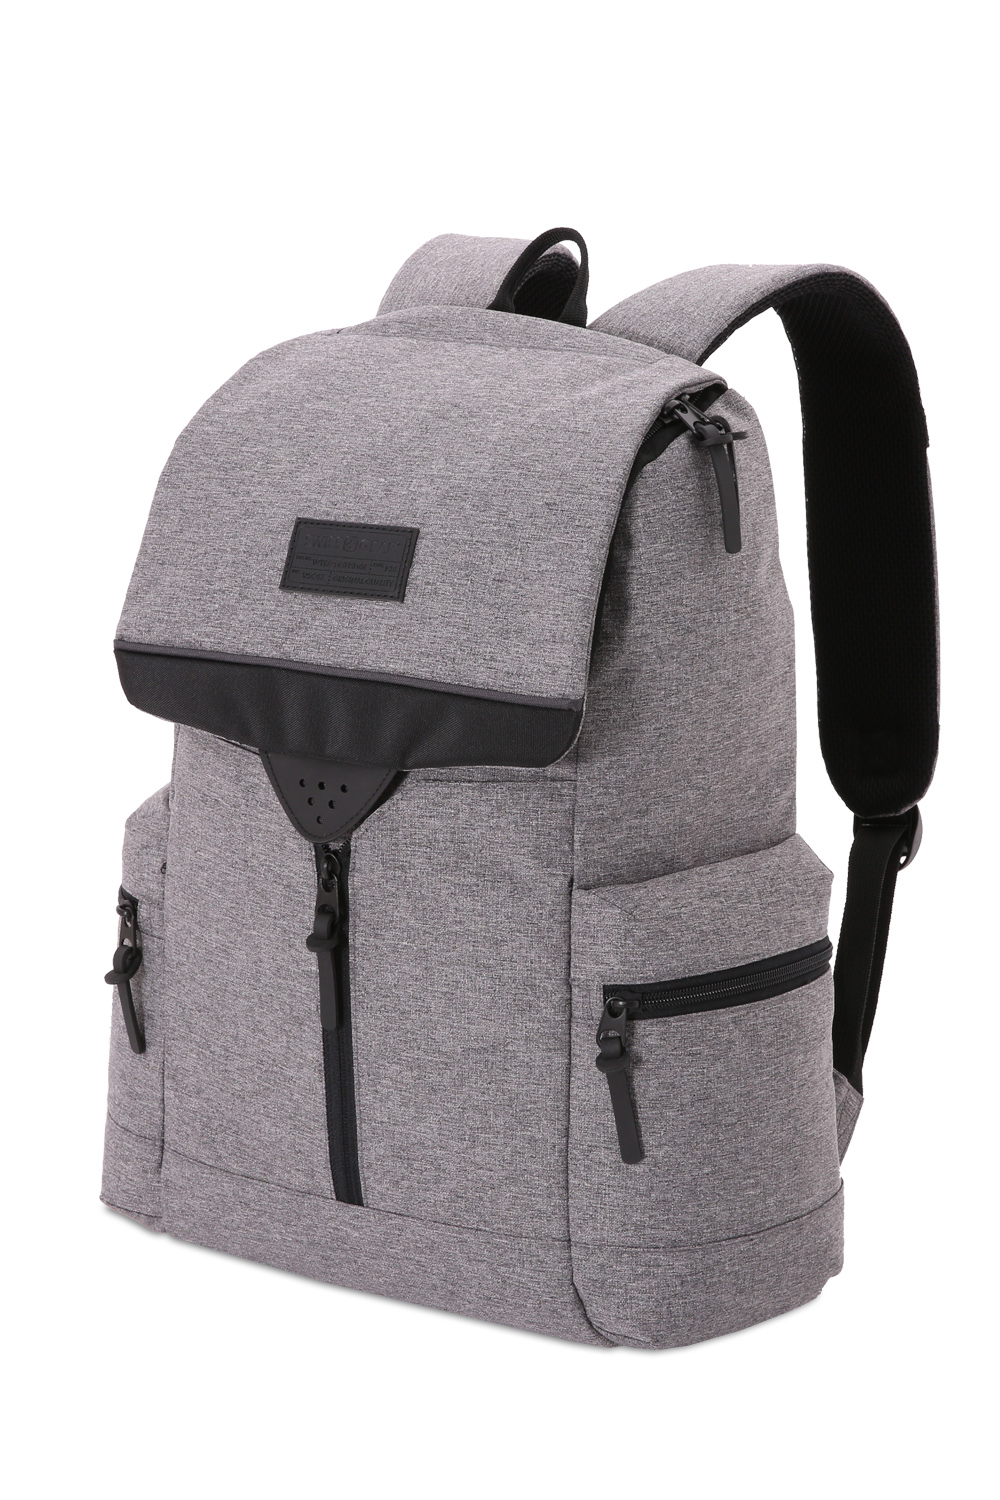 Swissgear 5753 Laptop Backpack - Dark Gray Heather/Black ...